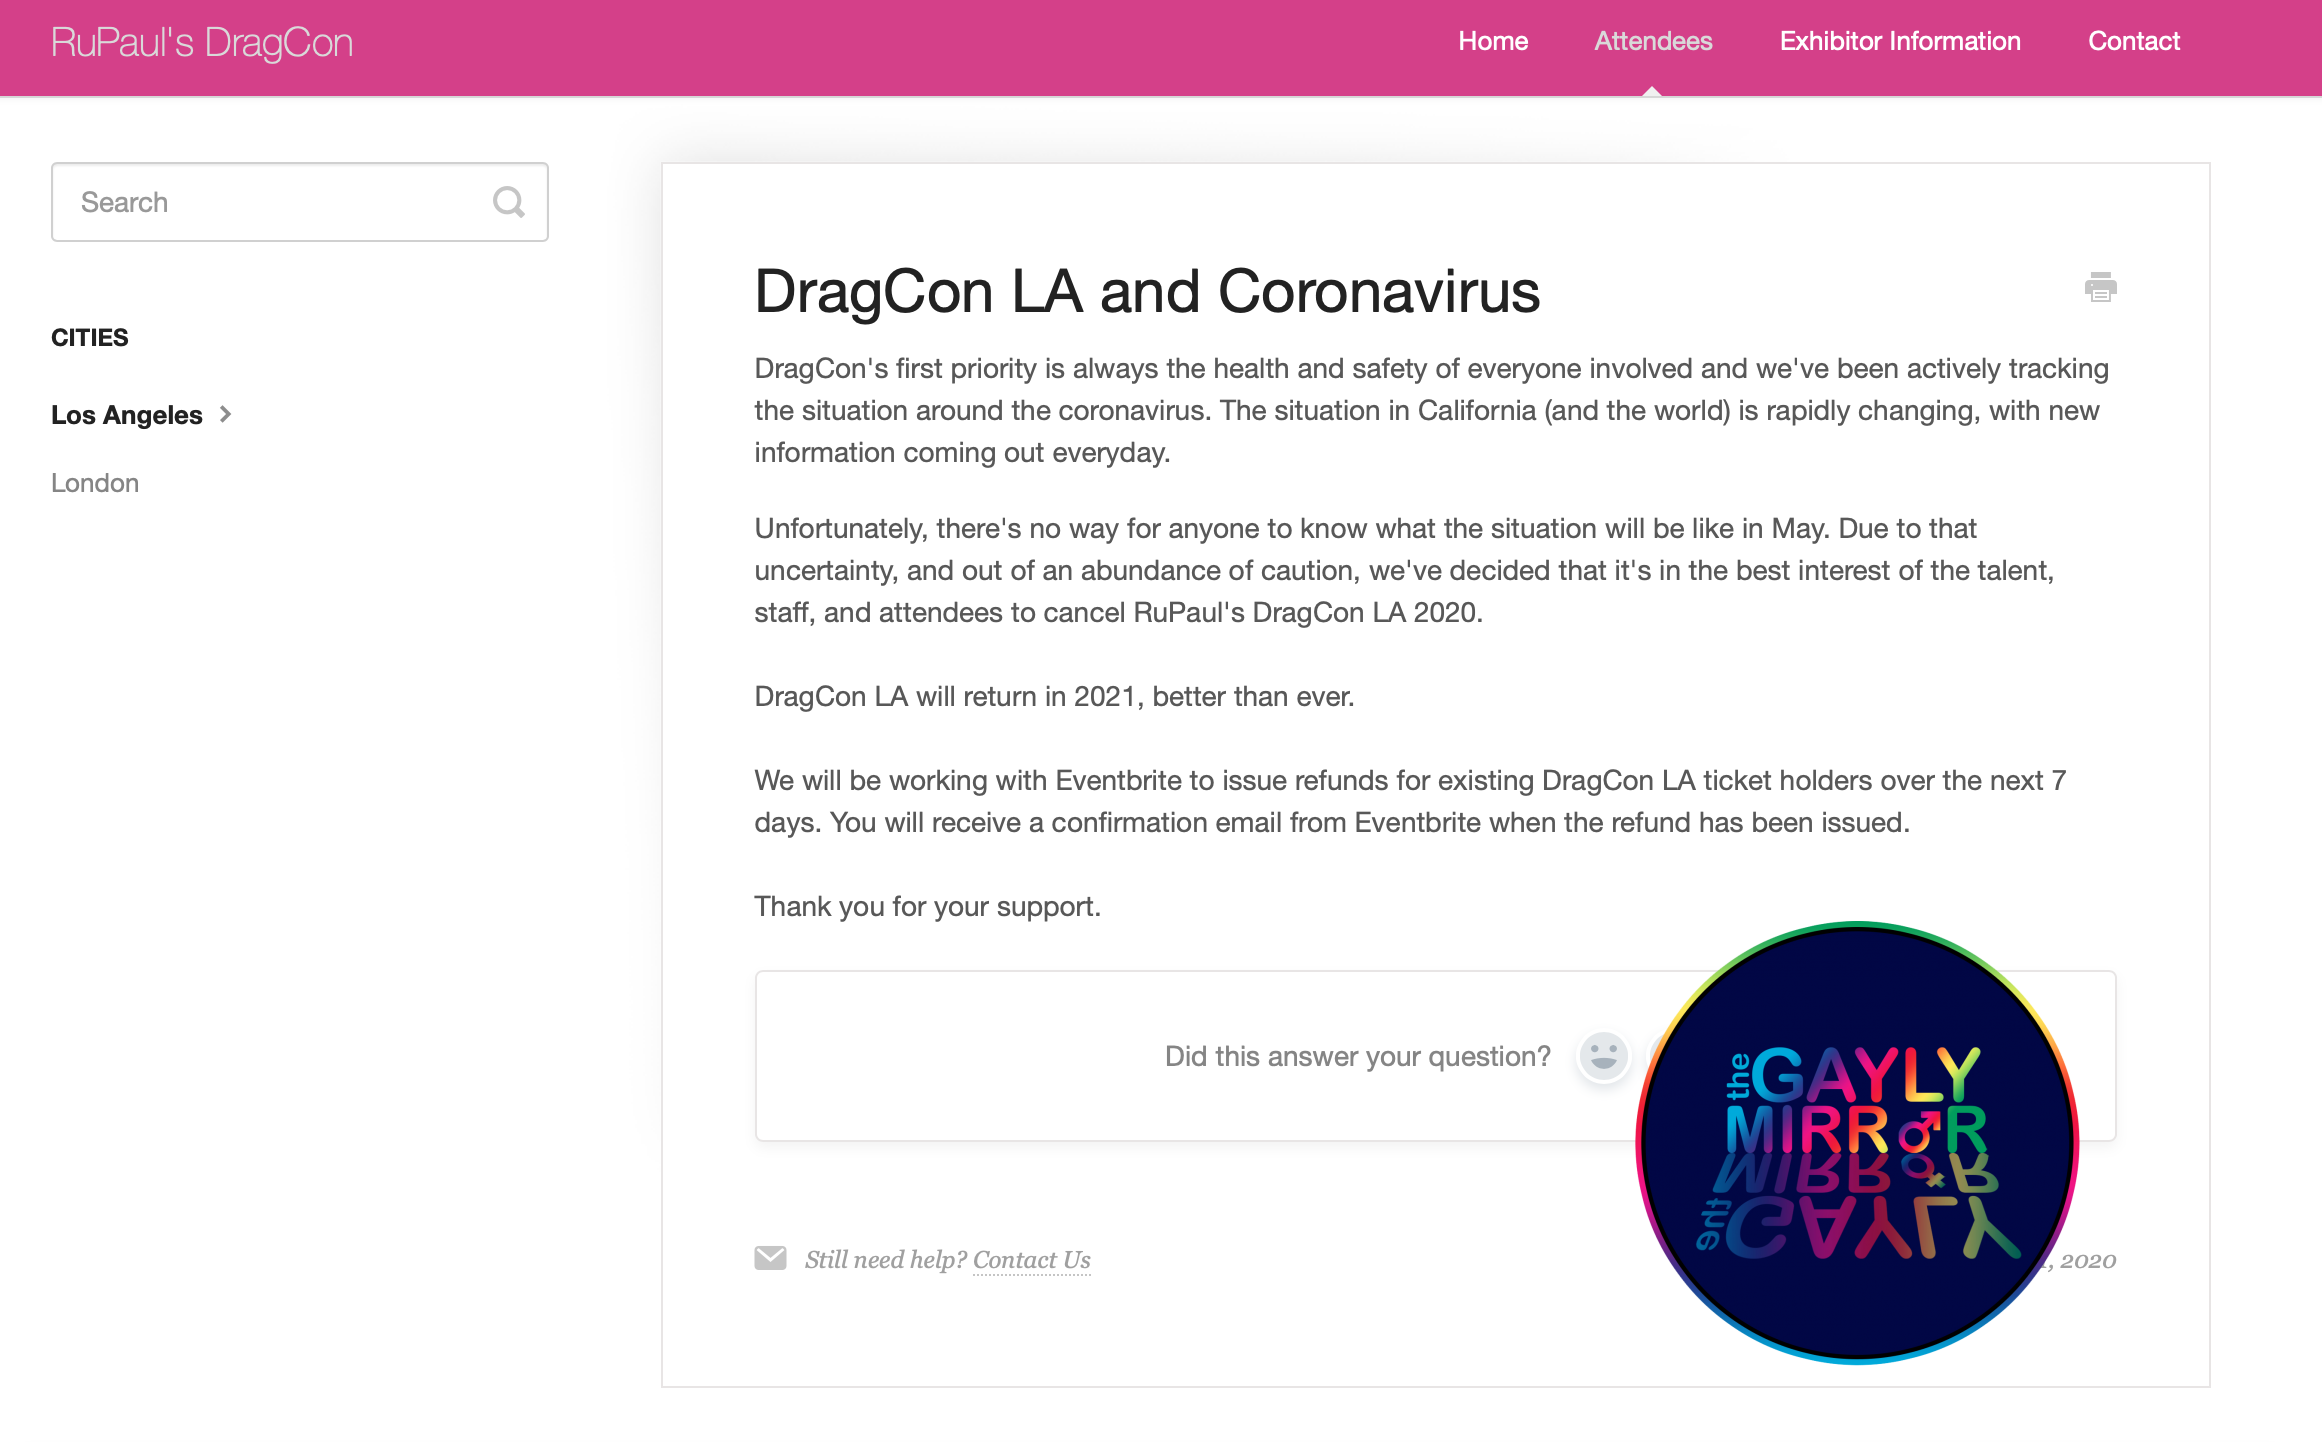 RuPaul's DragCon LA 2020 cancelled after corona virus concerns